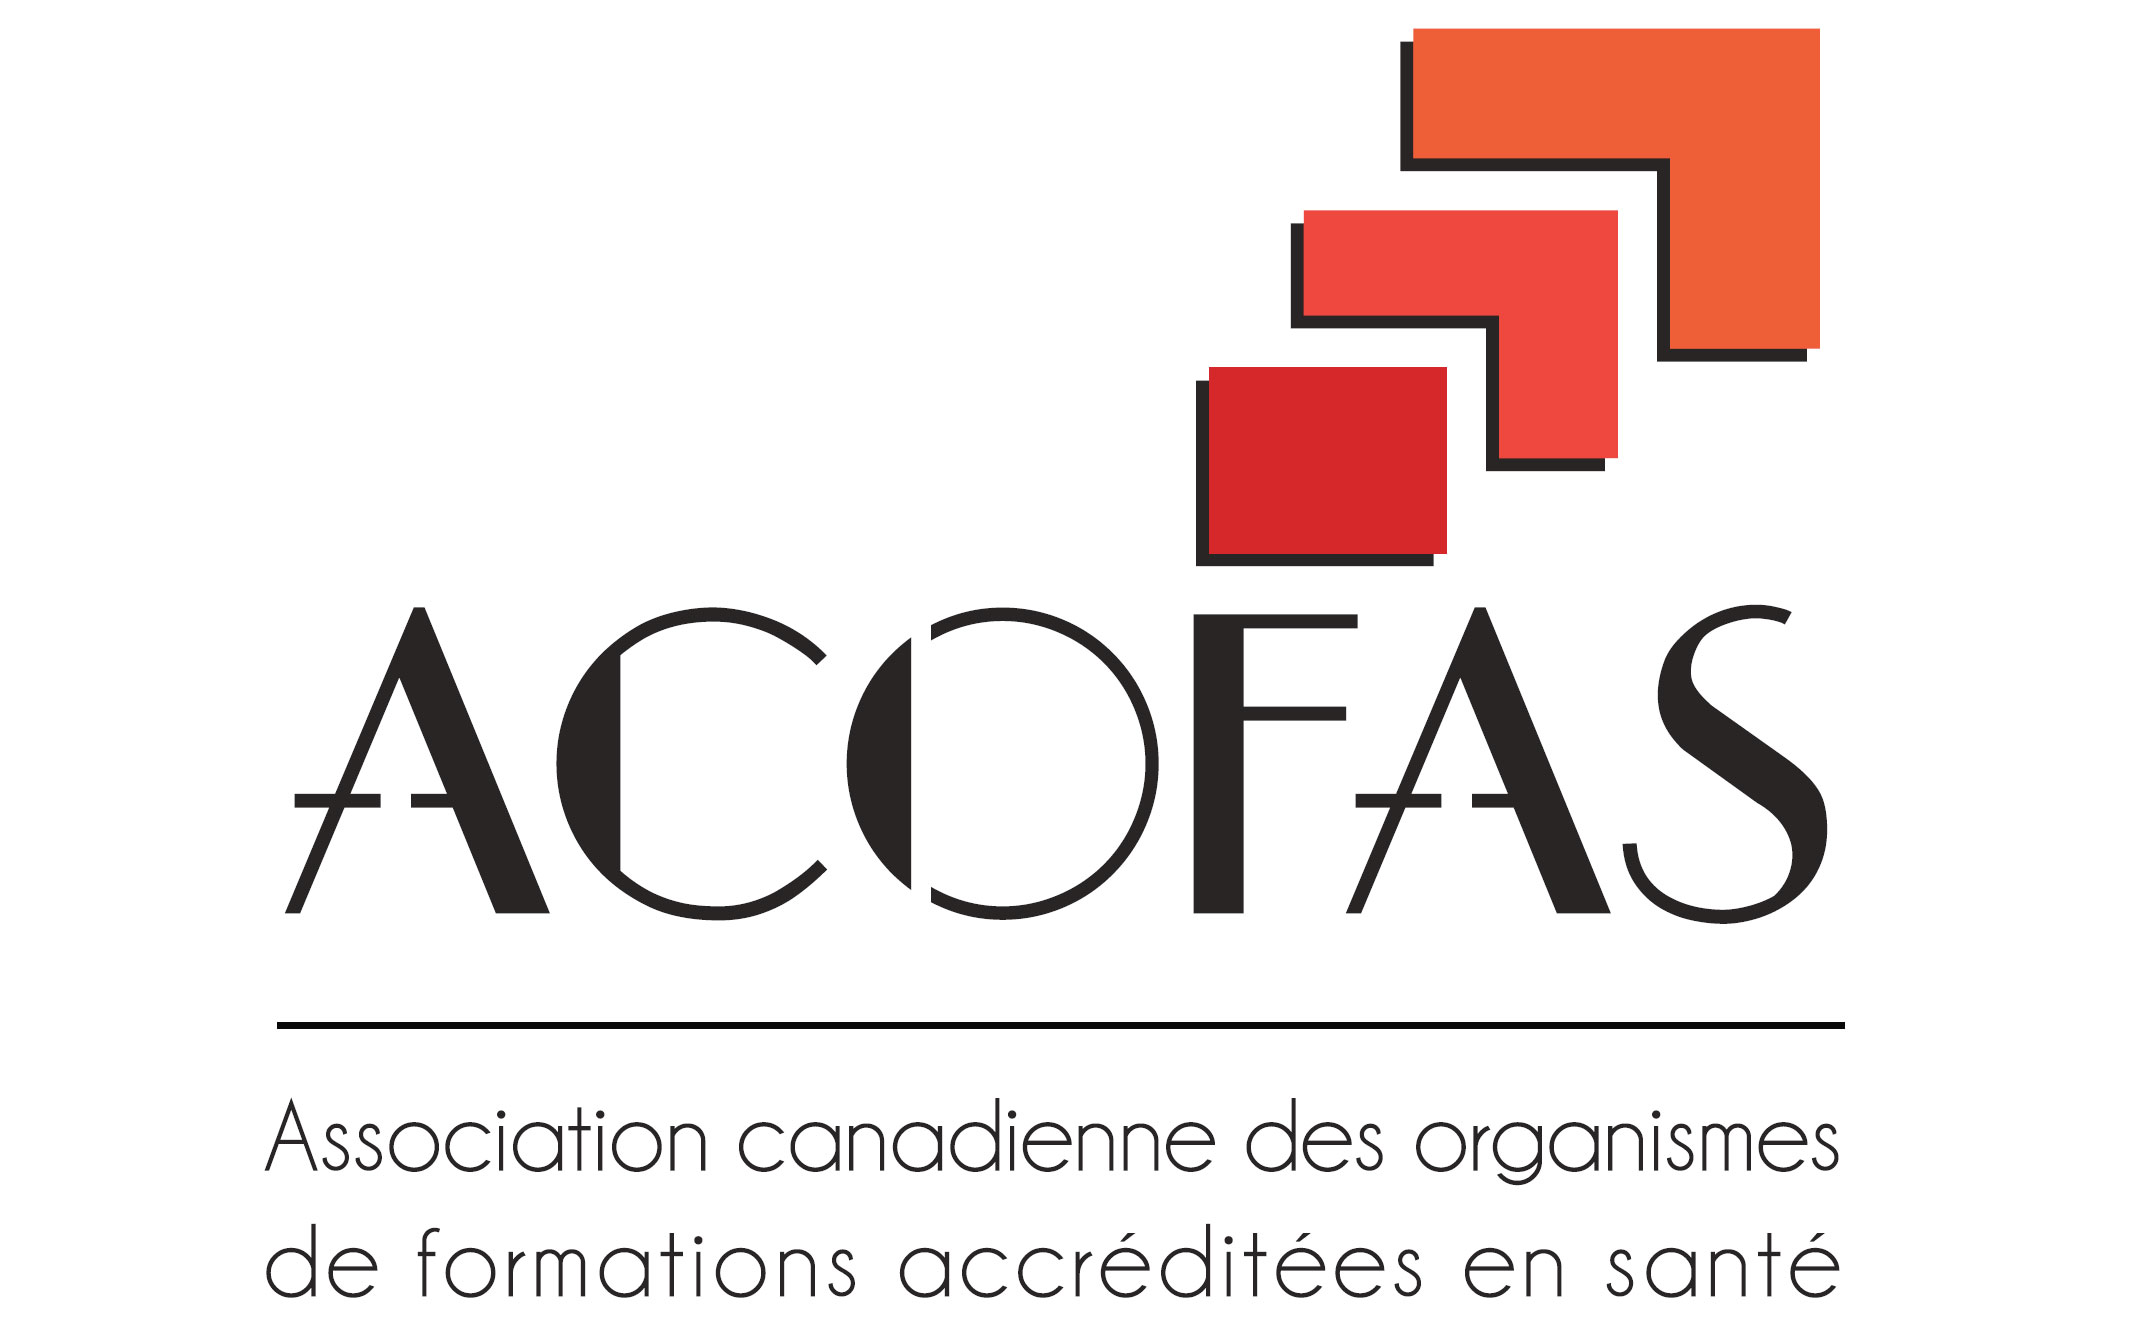 Member of the ACOFAS